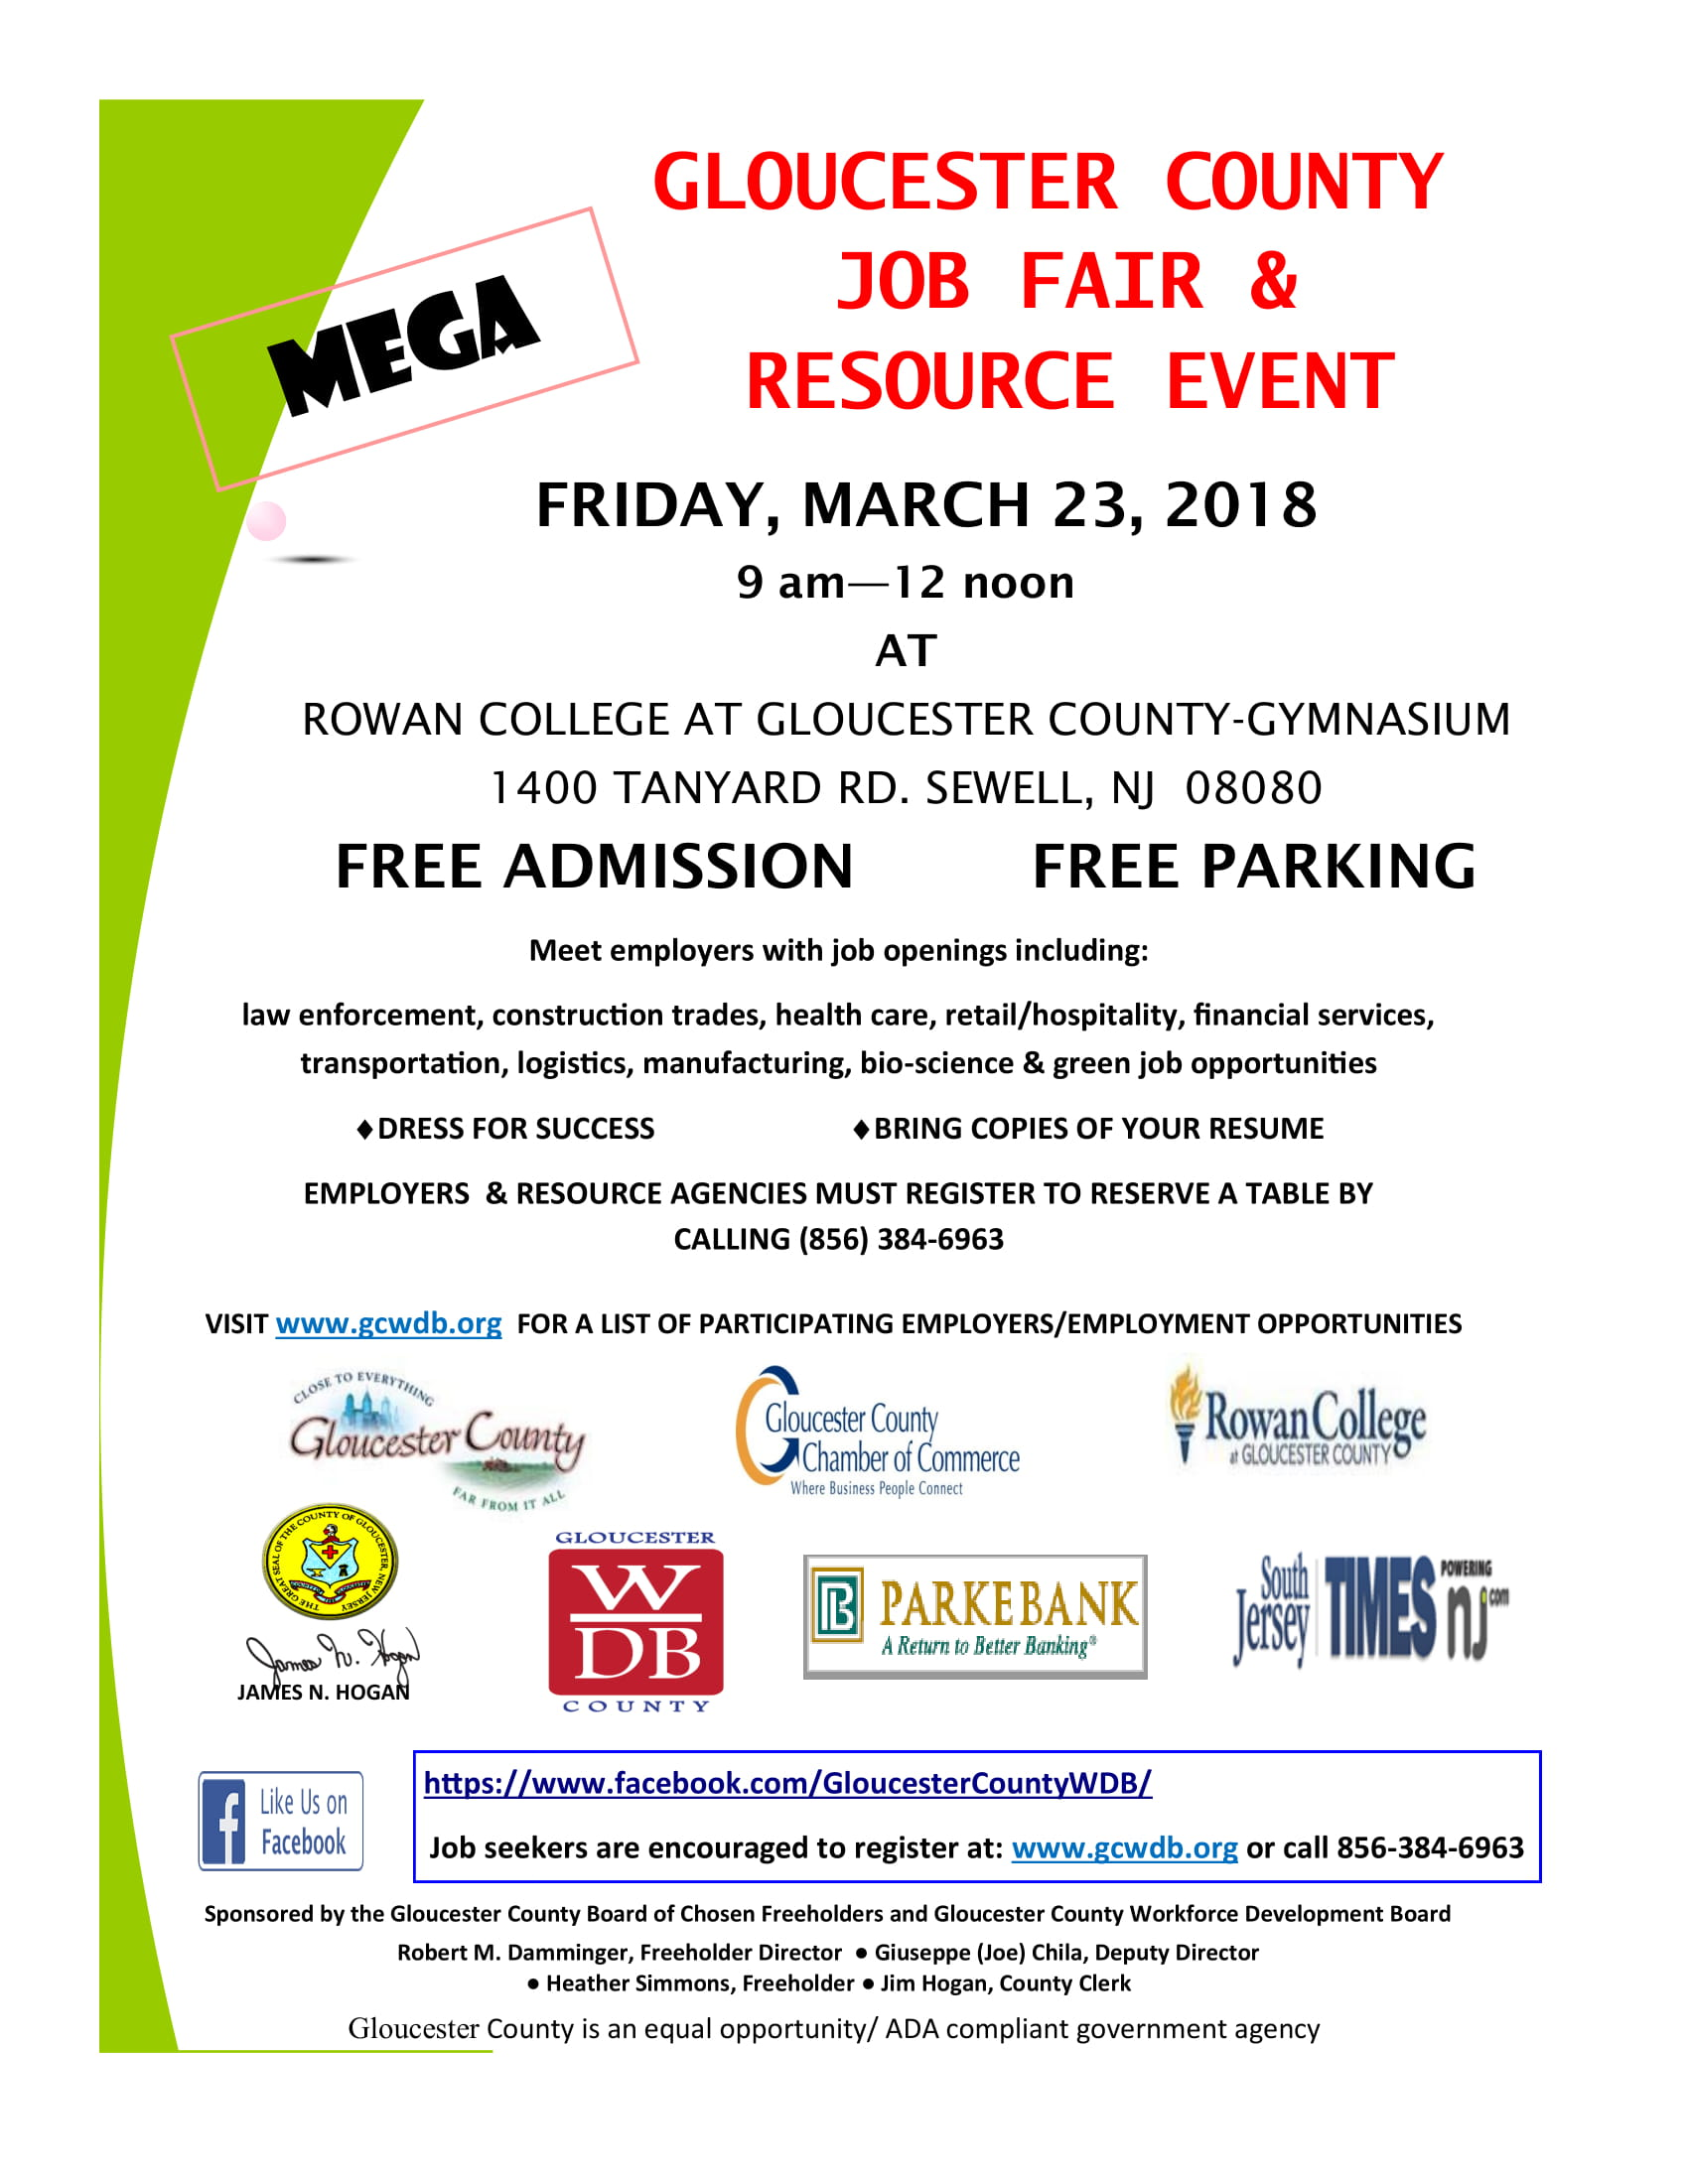 Naval foundry and propeller center march 23 9 am to noon gloucester county job fair and resource event rowan college at gloucester county new jersey gymnasium view nvjuhfo Choice Image